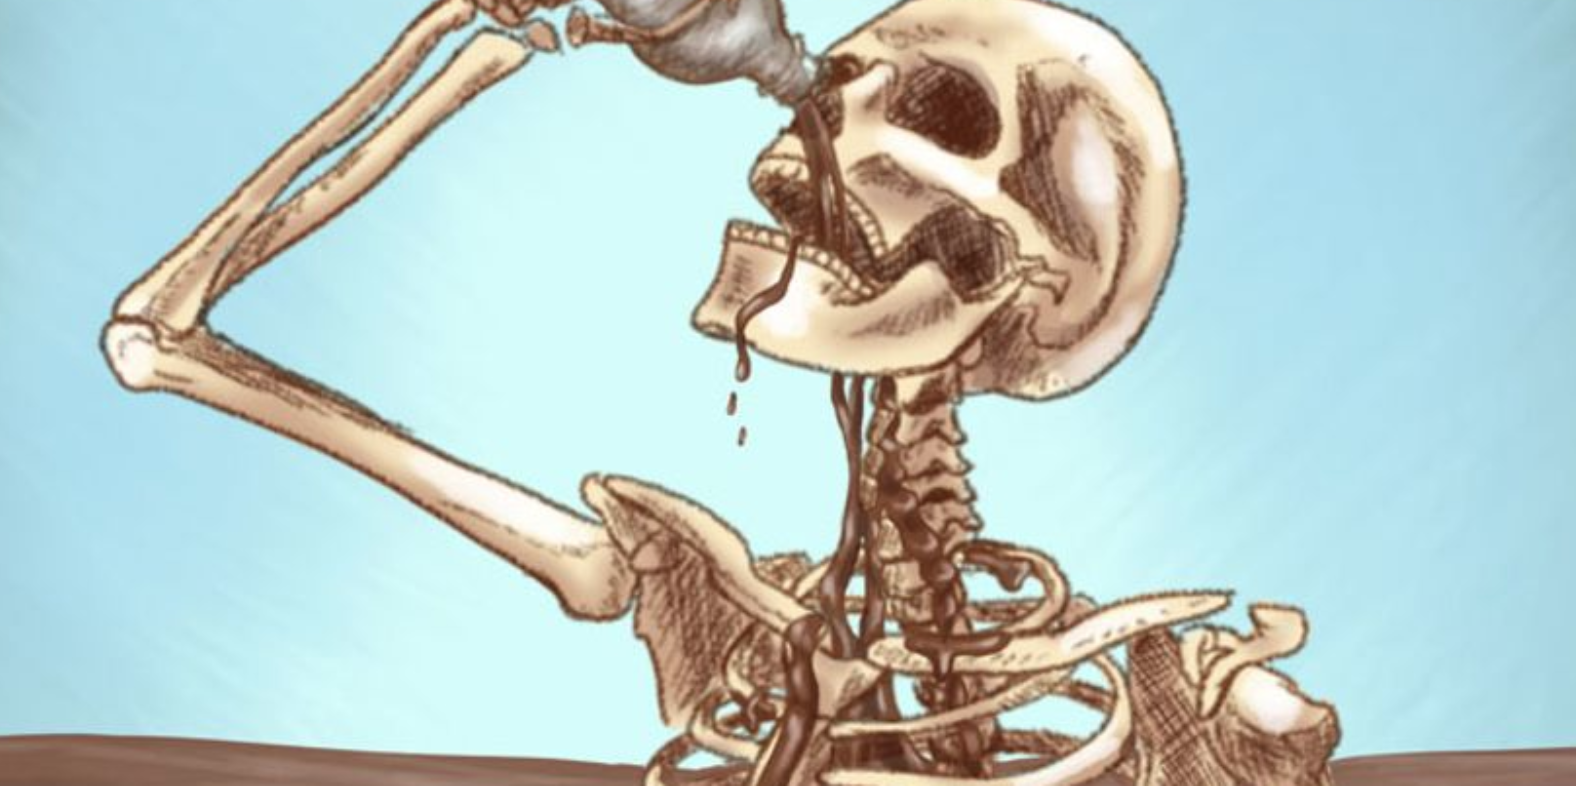 Yes, it's a skeleton attempting to drink soda.